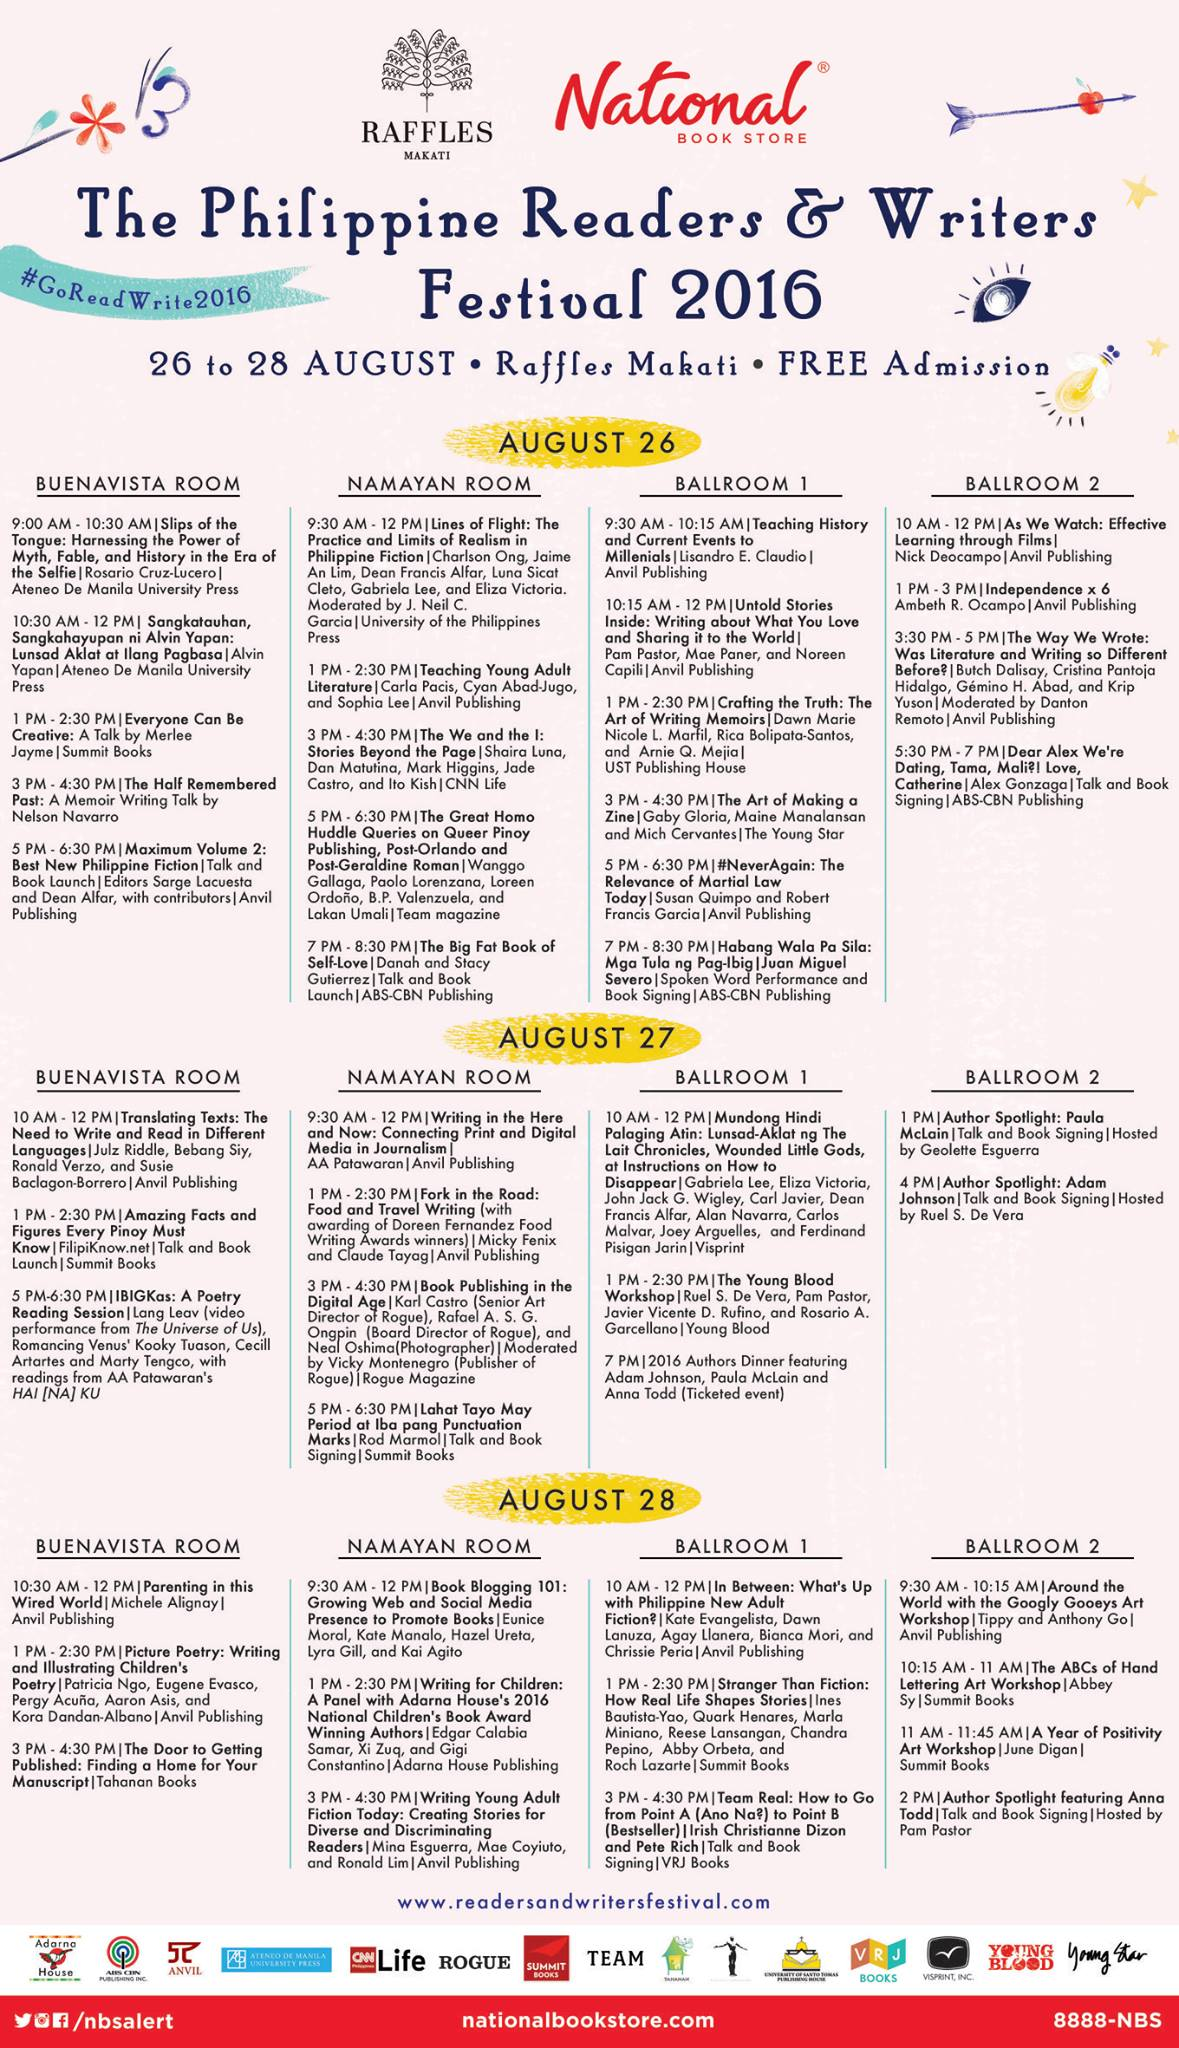 The Philippine Readers and Writers Festival - Event Schedule